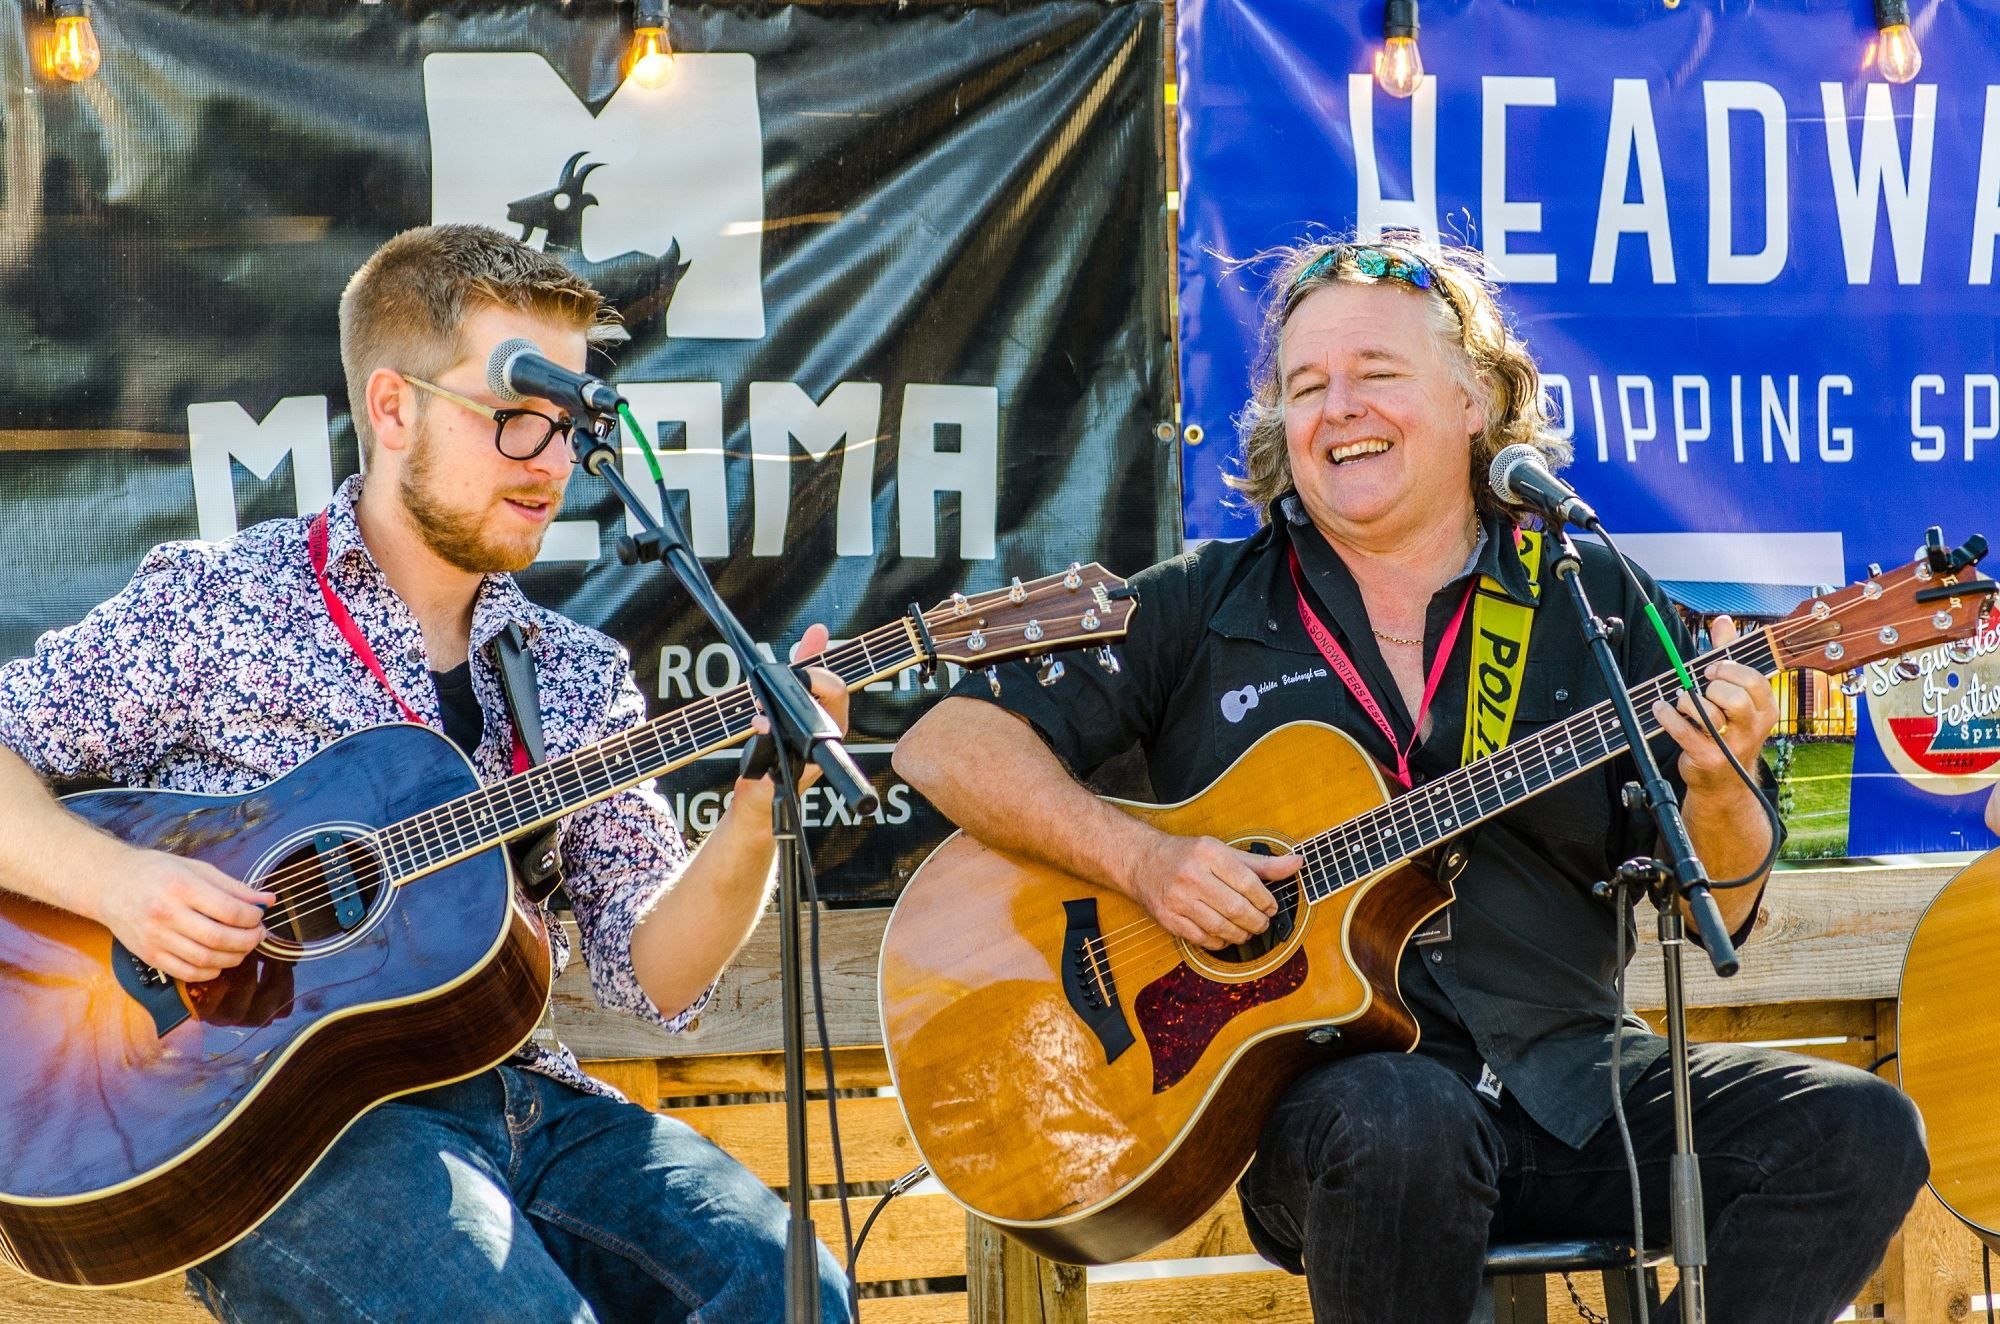 Two smiling songwriters performing,